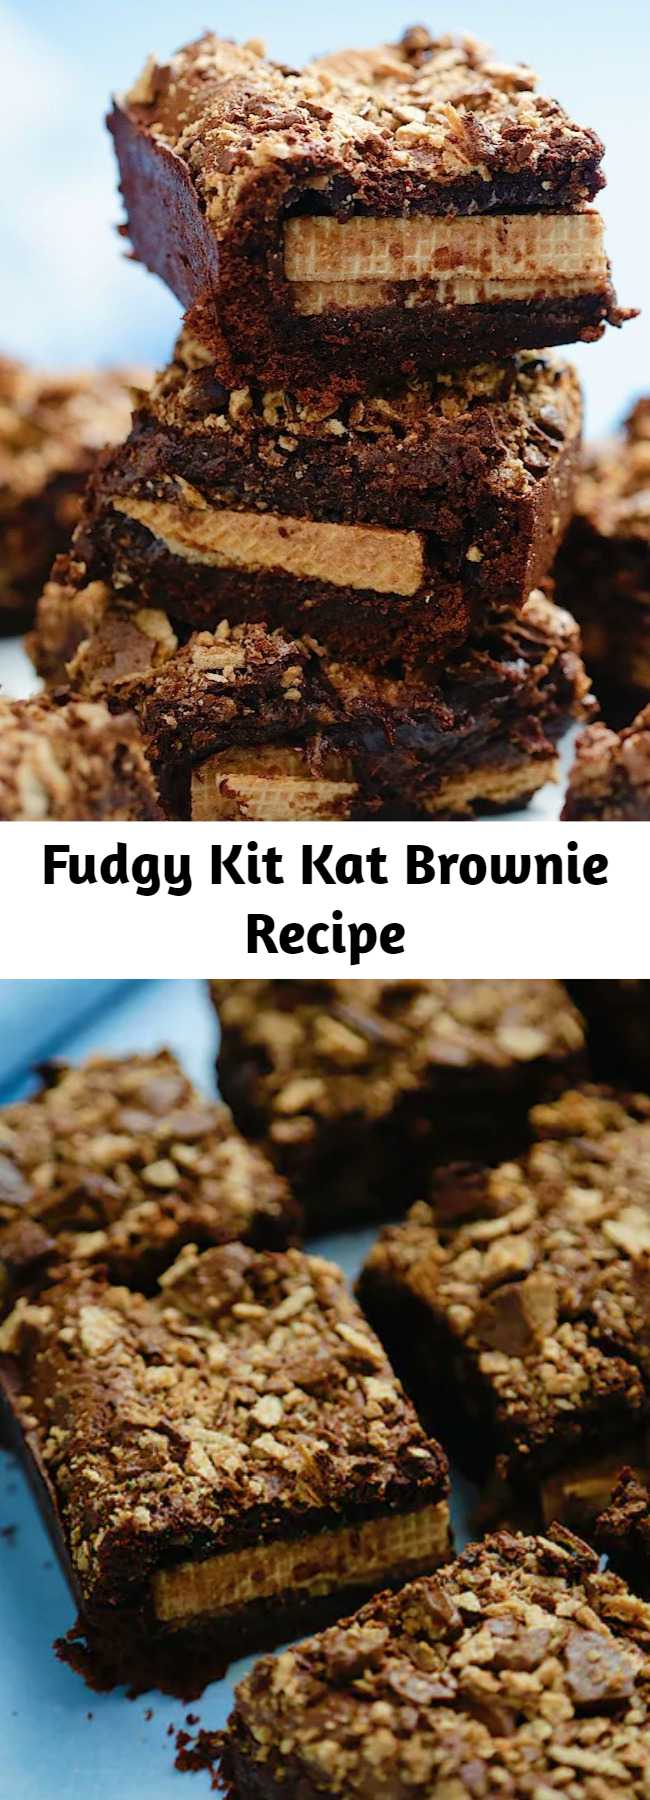 Deliciously thick and fudgy chocolate brownies that are stuffed with whole KitKats, and generously topped with broken KitKats! We added some Kit Kats and took brownies to a whole new level.